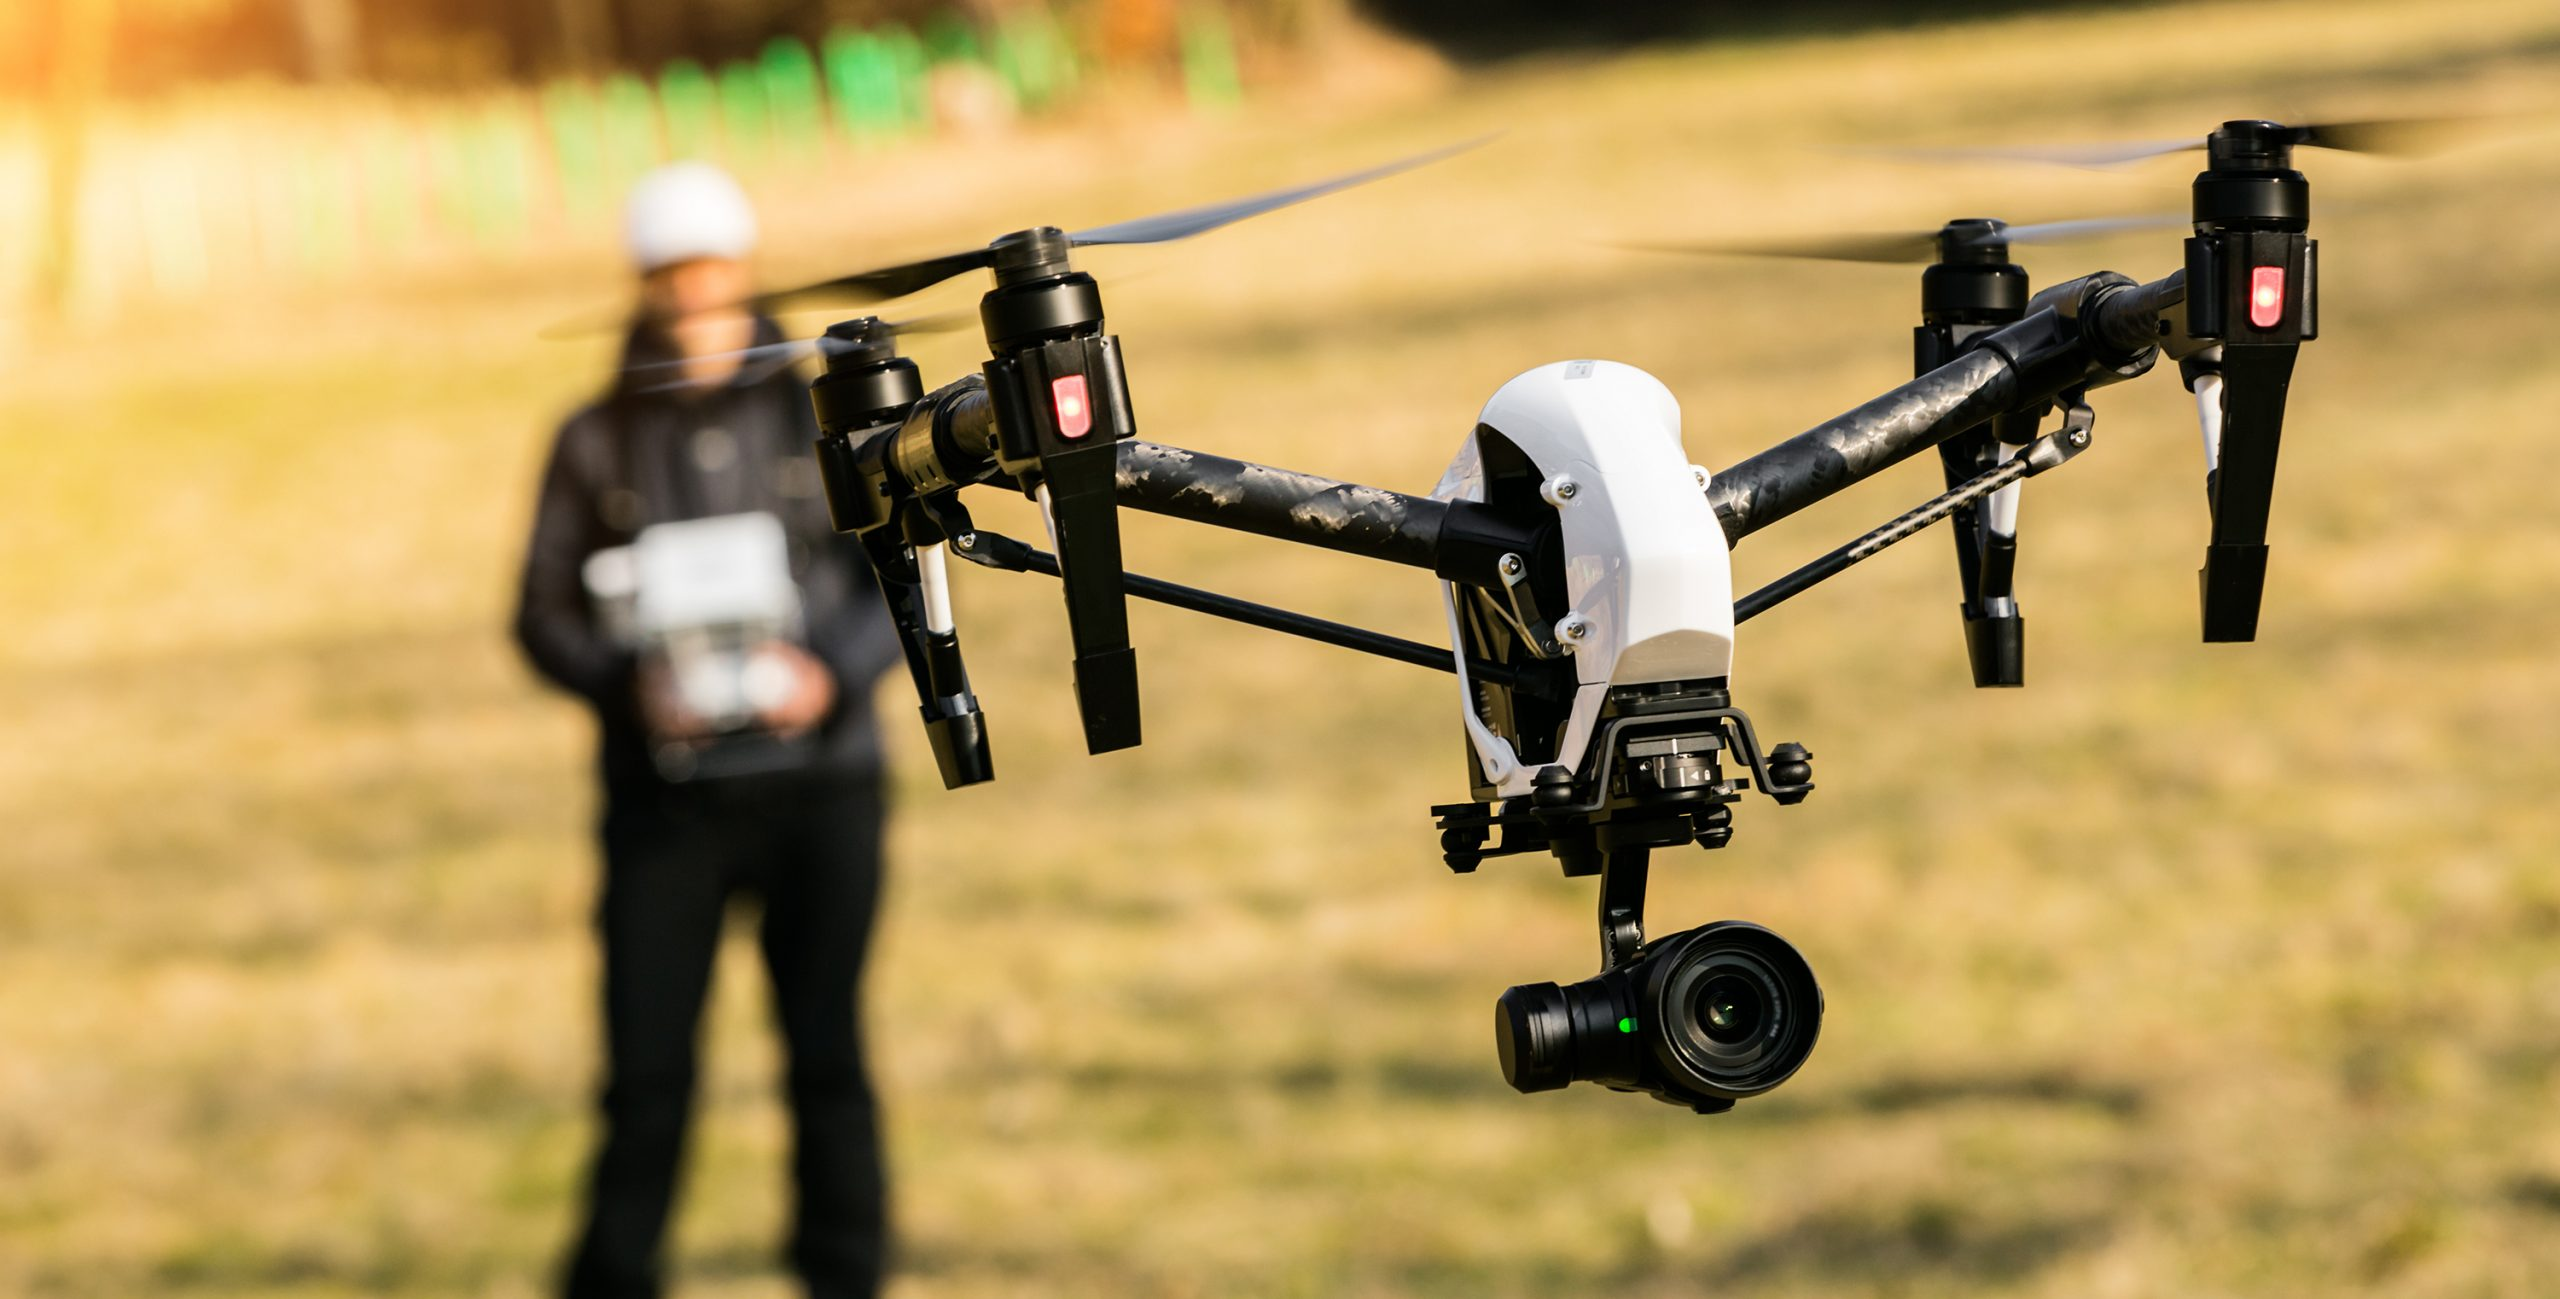 Drones-getting-shot-at-is-no-longer-new